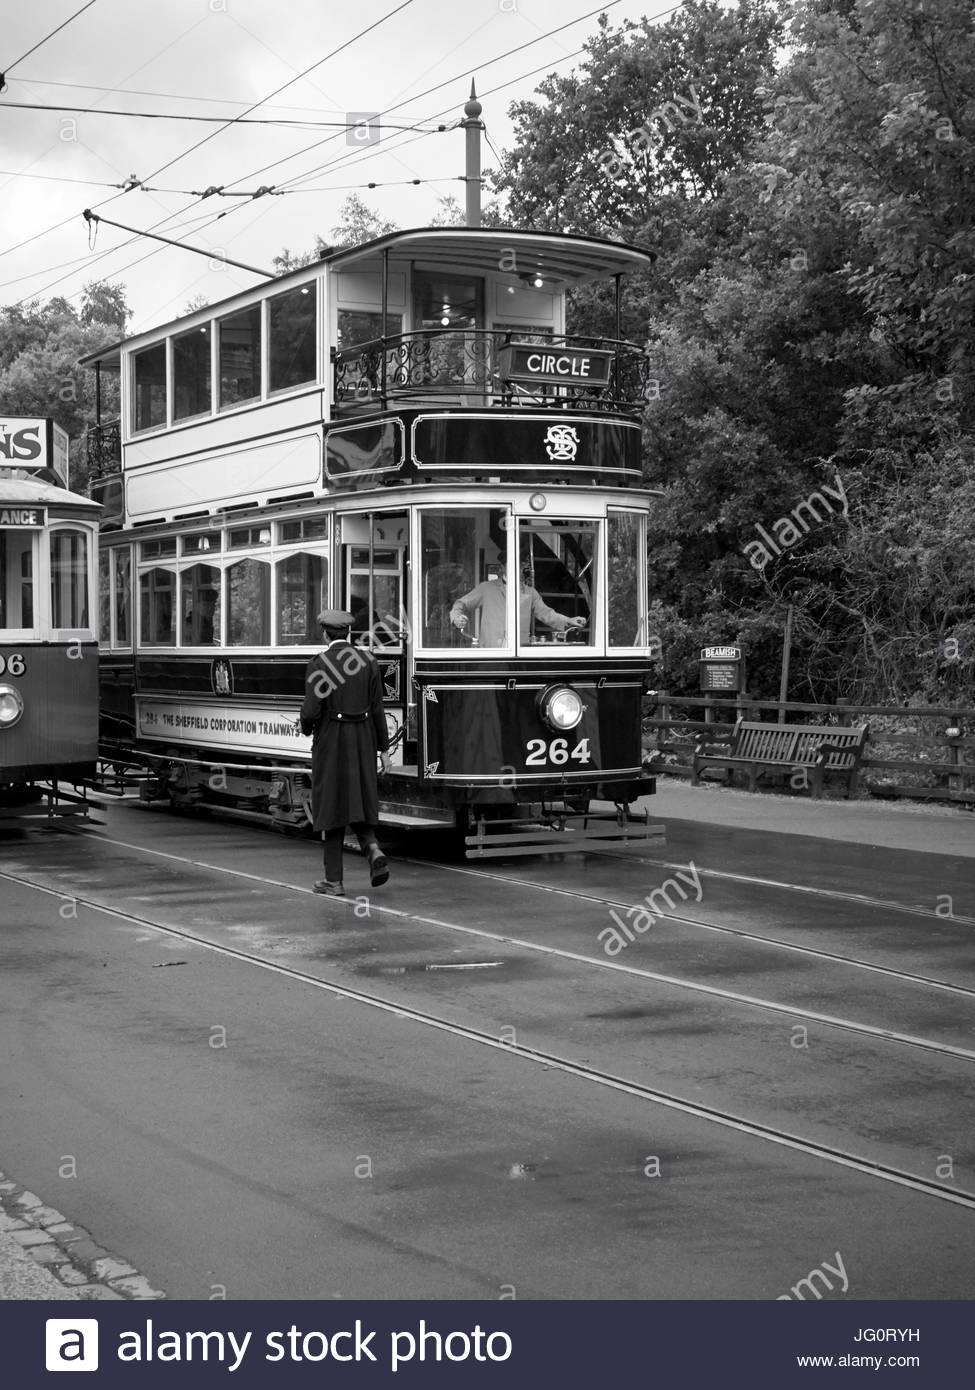 A double deck Sheffield corperation livery number 264 electric tram with overhead power supply in Beamish open air - Stock Image